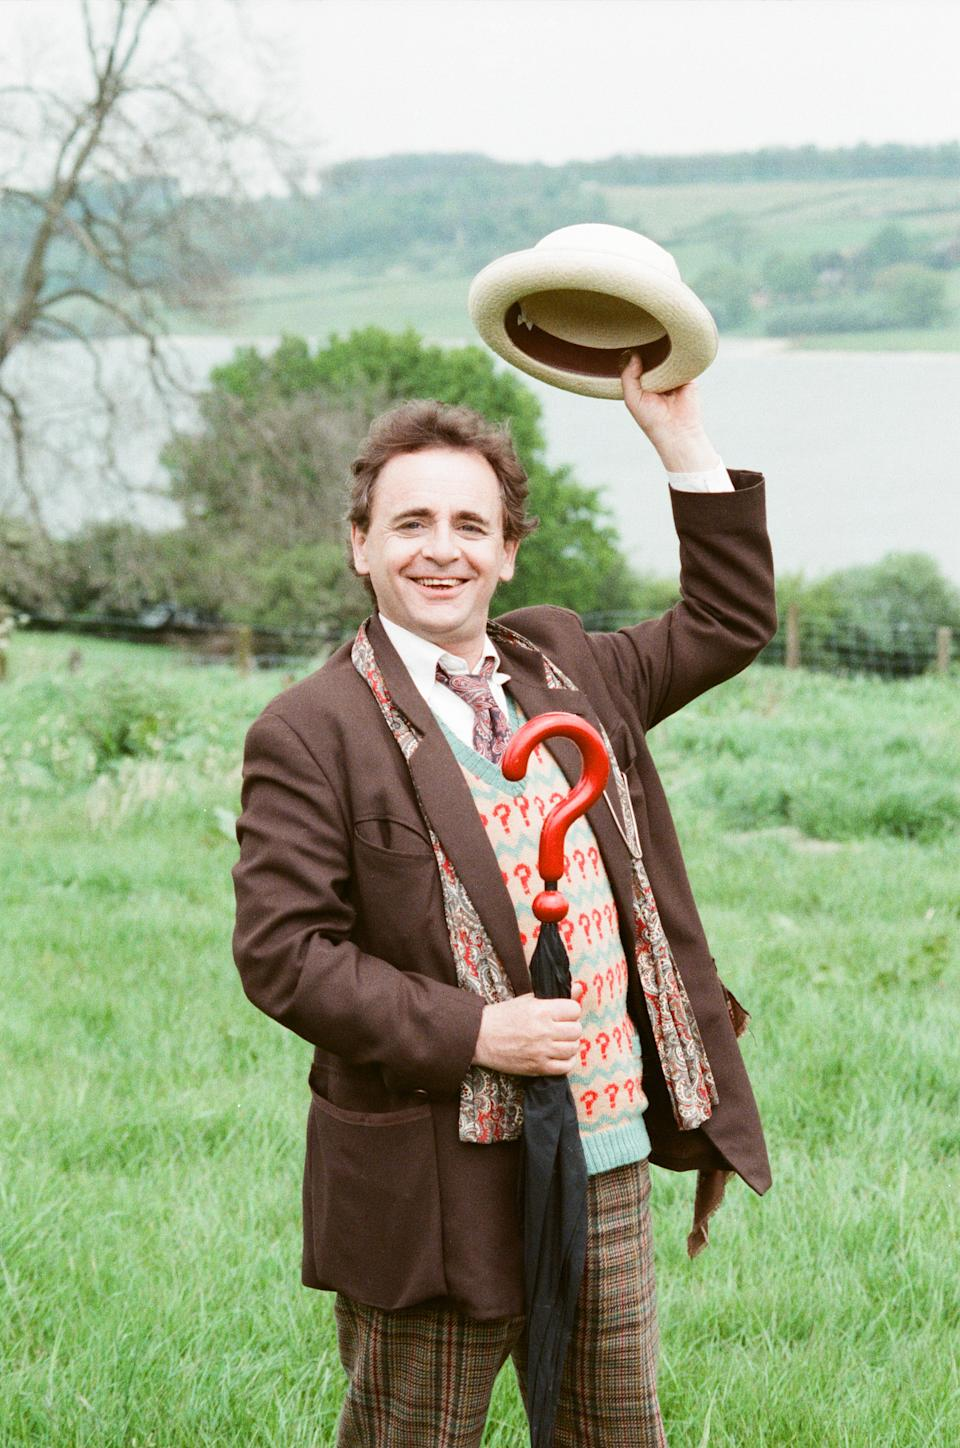 Sylvester McCoy as the Doctor whilst on location filming for the Dr Who story Battlefield, 16th May 1989. (Photo by Arnold Slater/Mirrorpix/Getty Images)